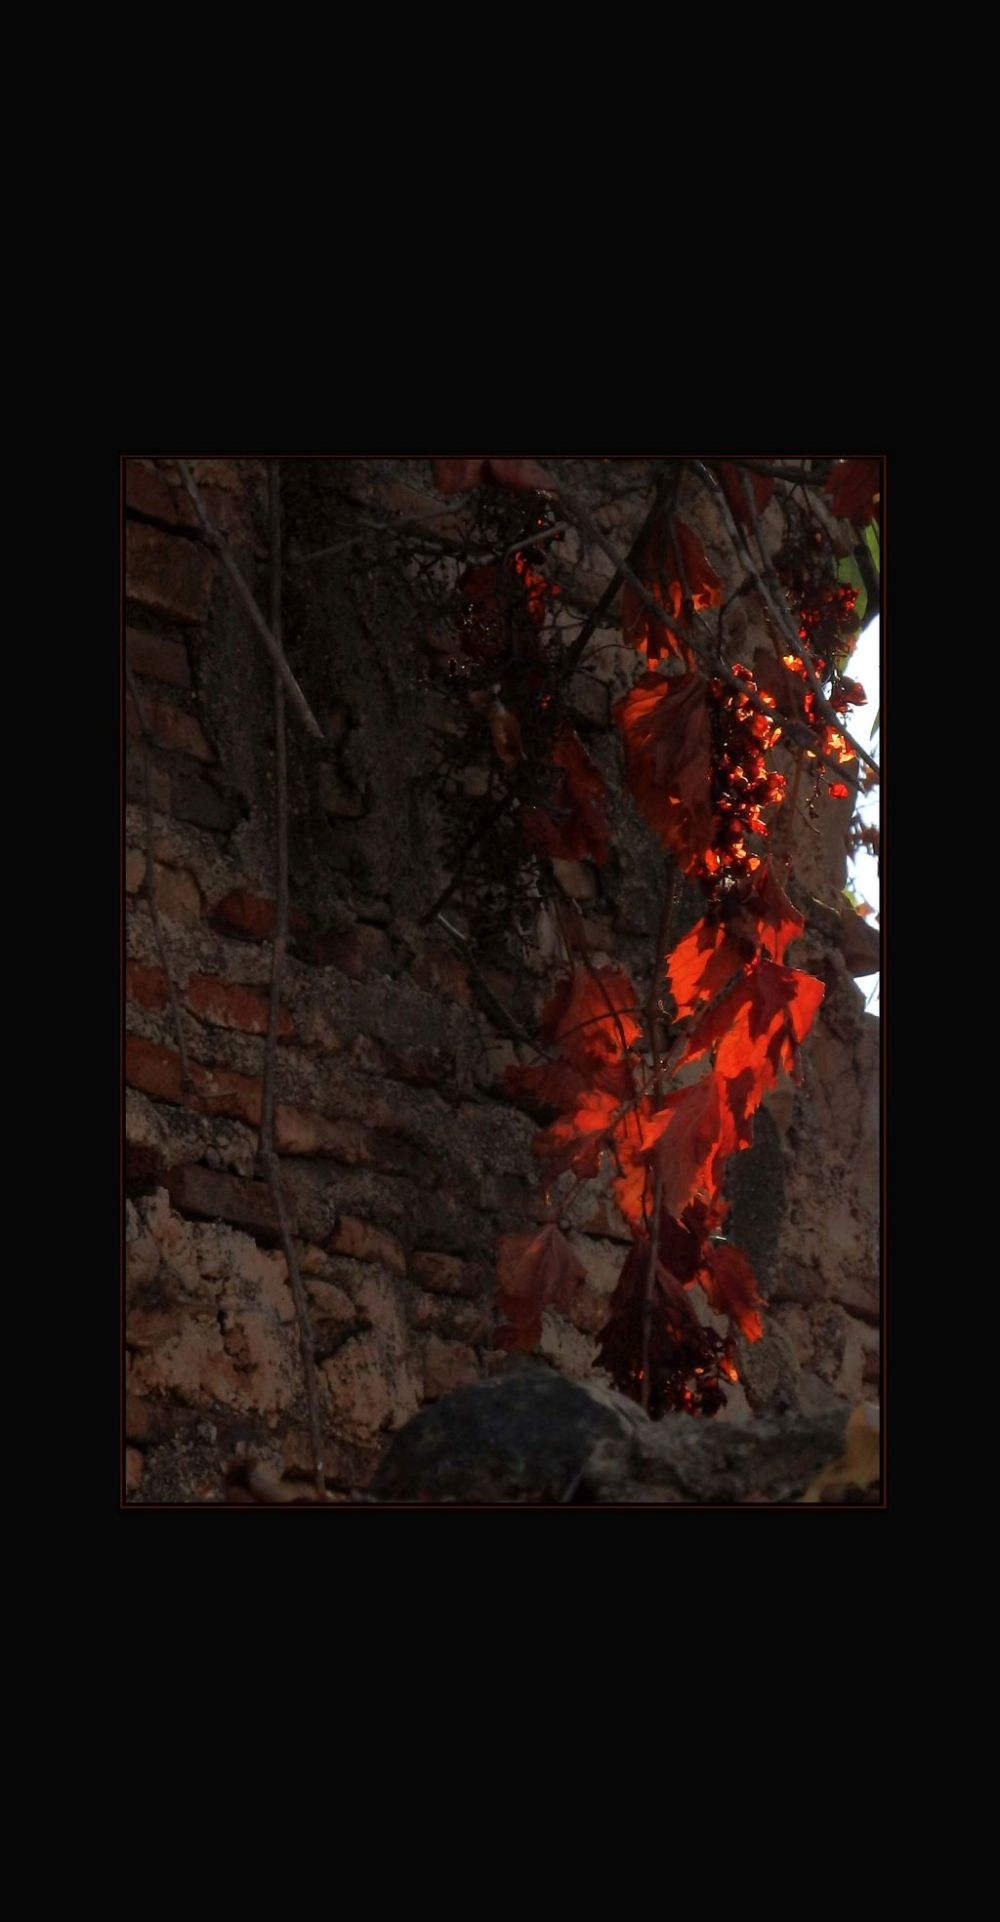 Autumn Leaves on The Old Brick Wall